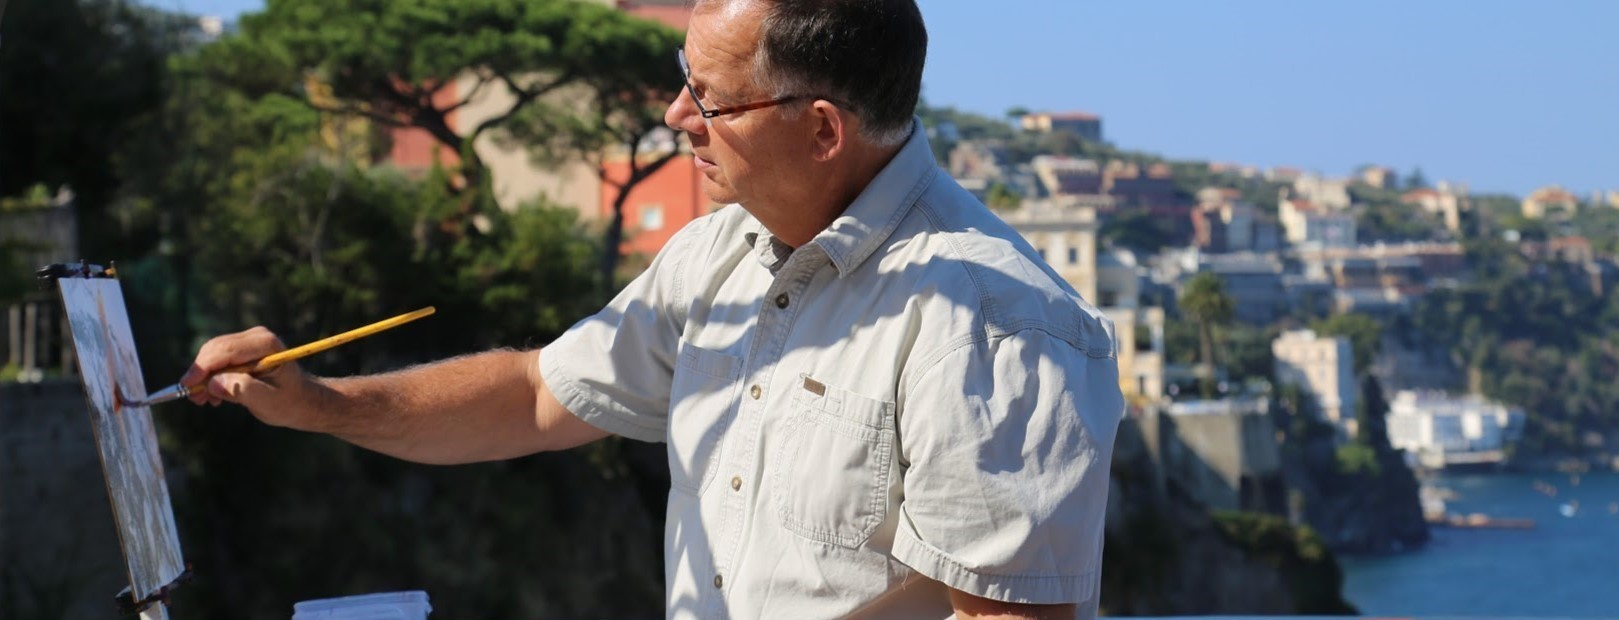 Mike Svob Painting in Italy.jpg